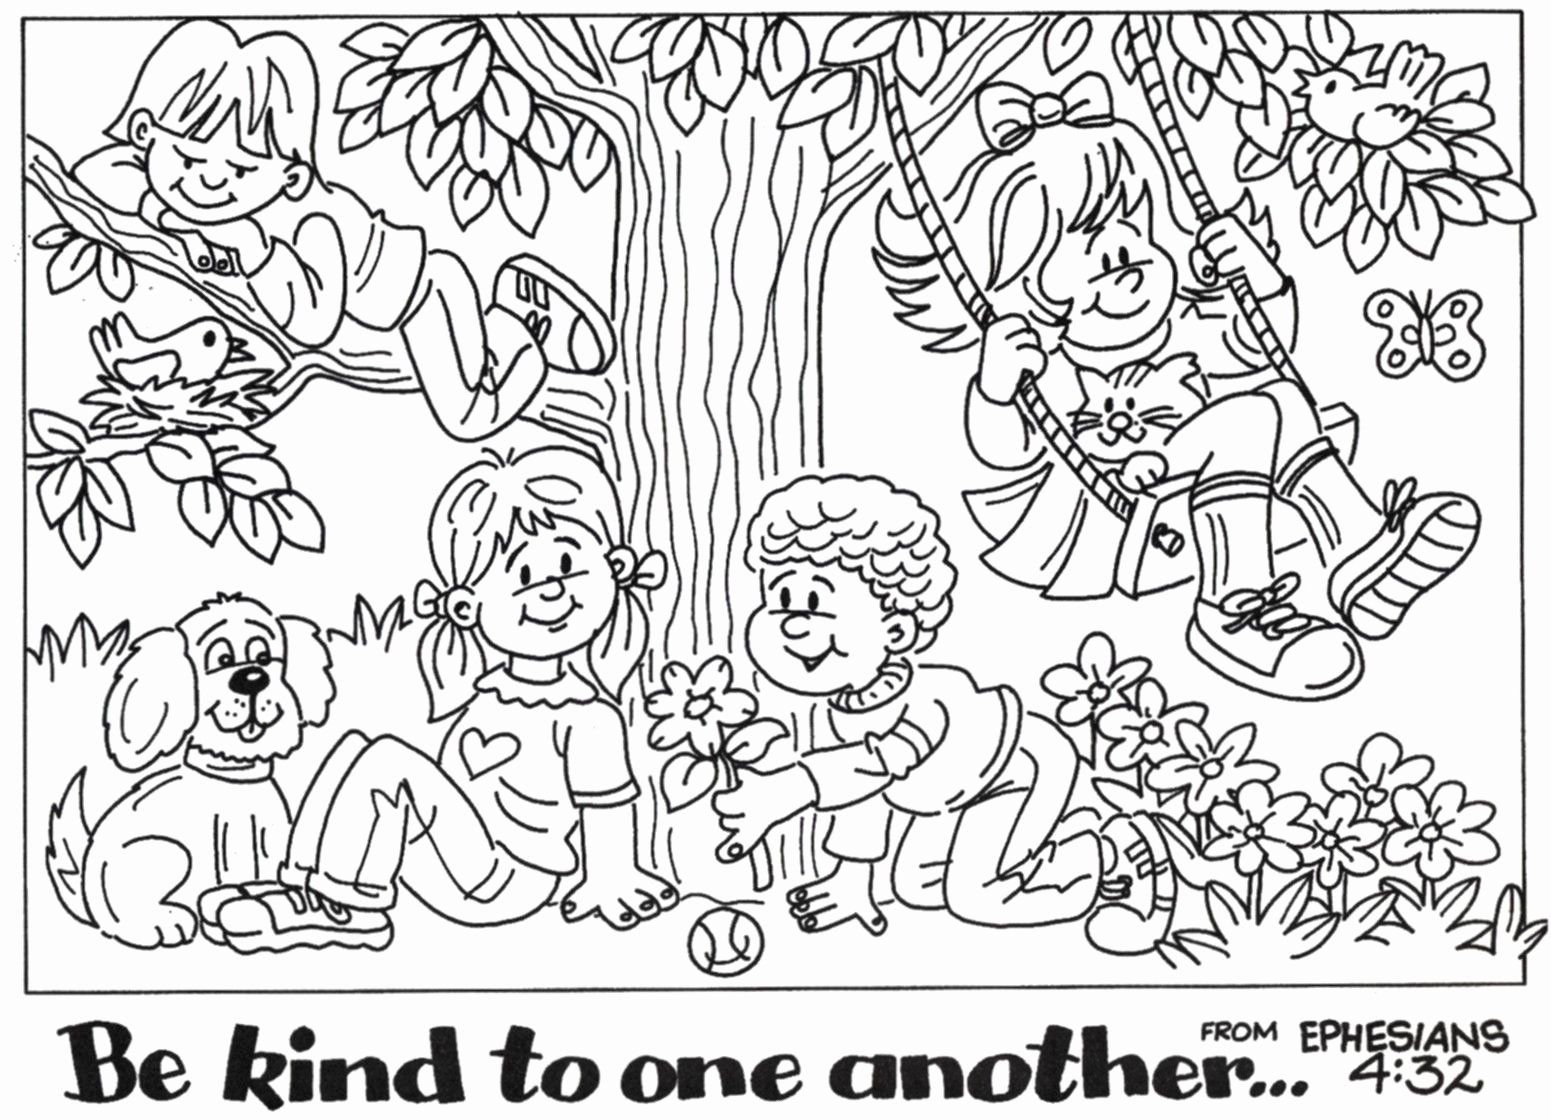 Love One Another Coloring Page Unique Poster Be Kind To One Another In 2020 Bible Coloring Pages Bible Coloring Christian Coloring